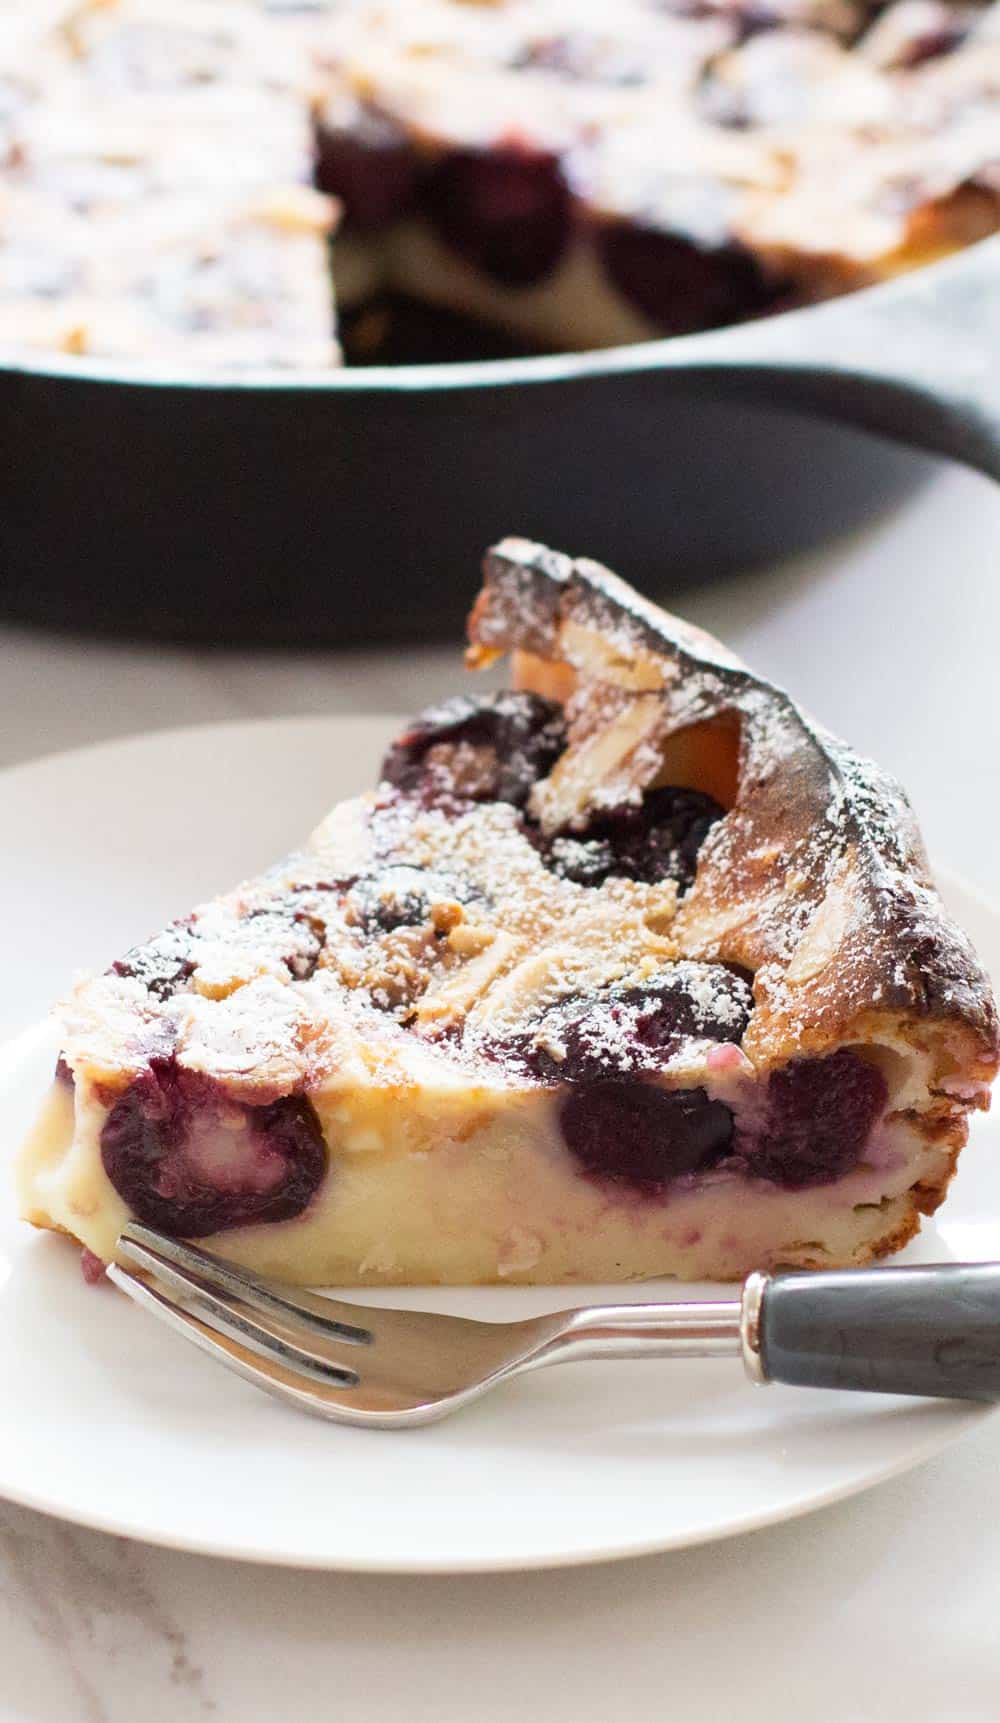 piece of cherry clafoutis with pan in background